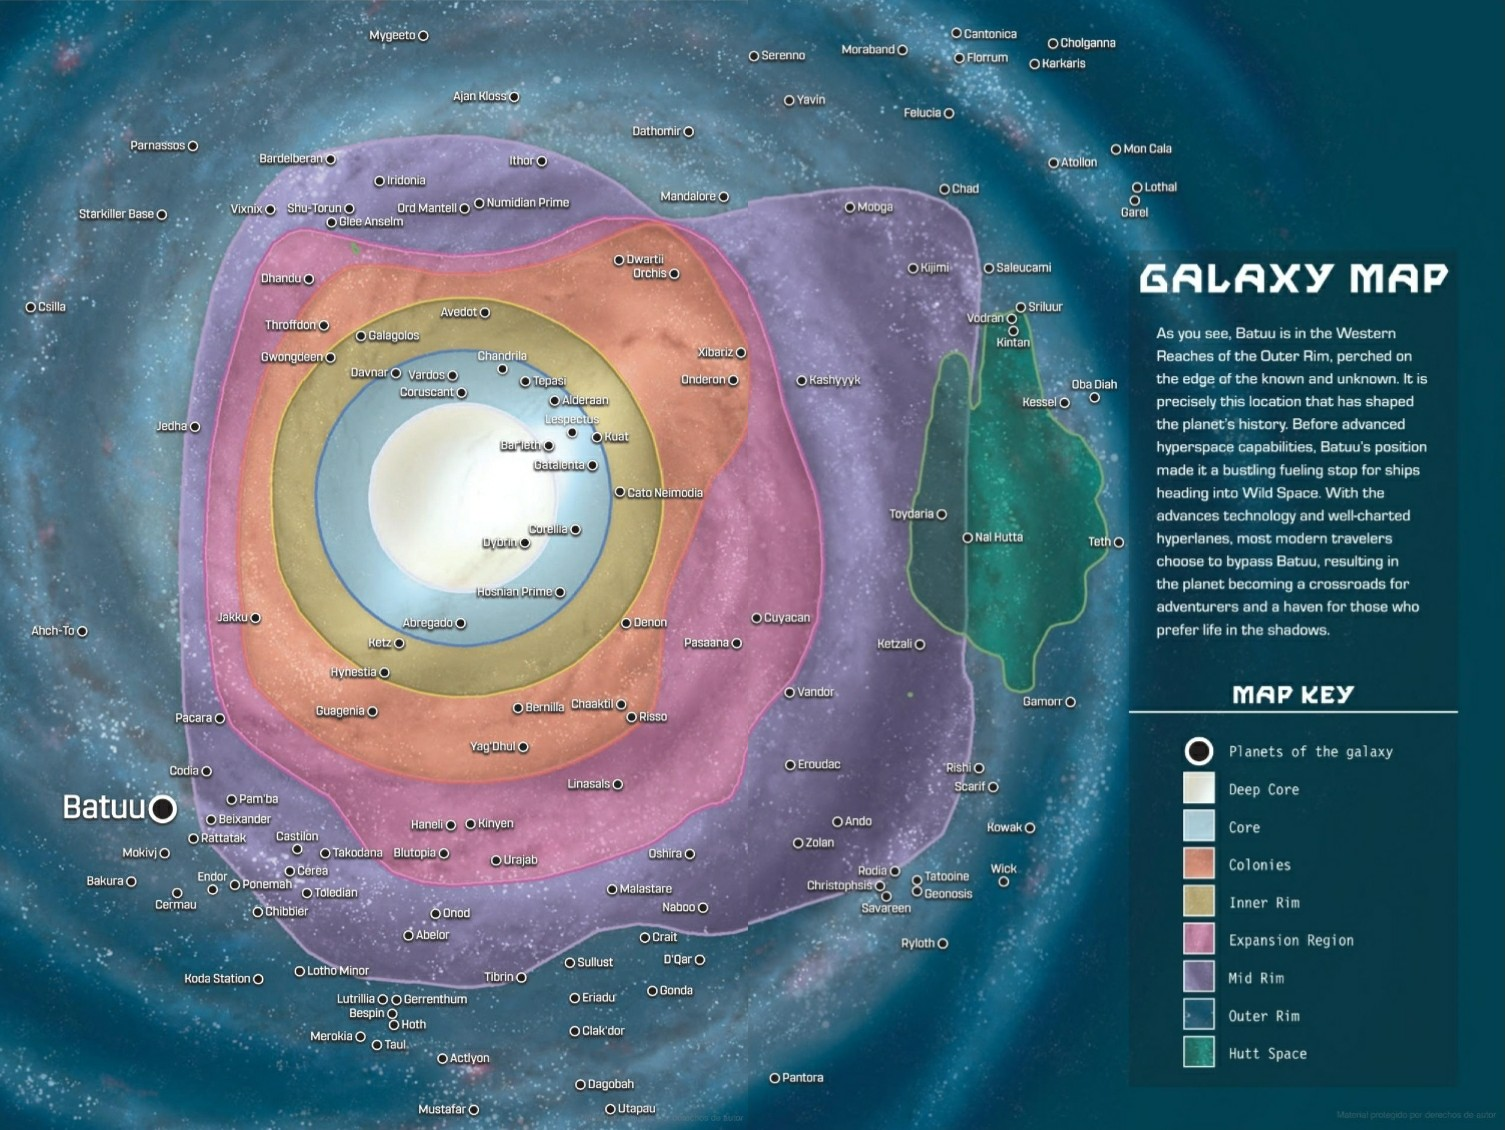 Disney - Star Wars - Galaxy map